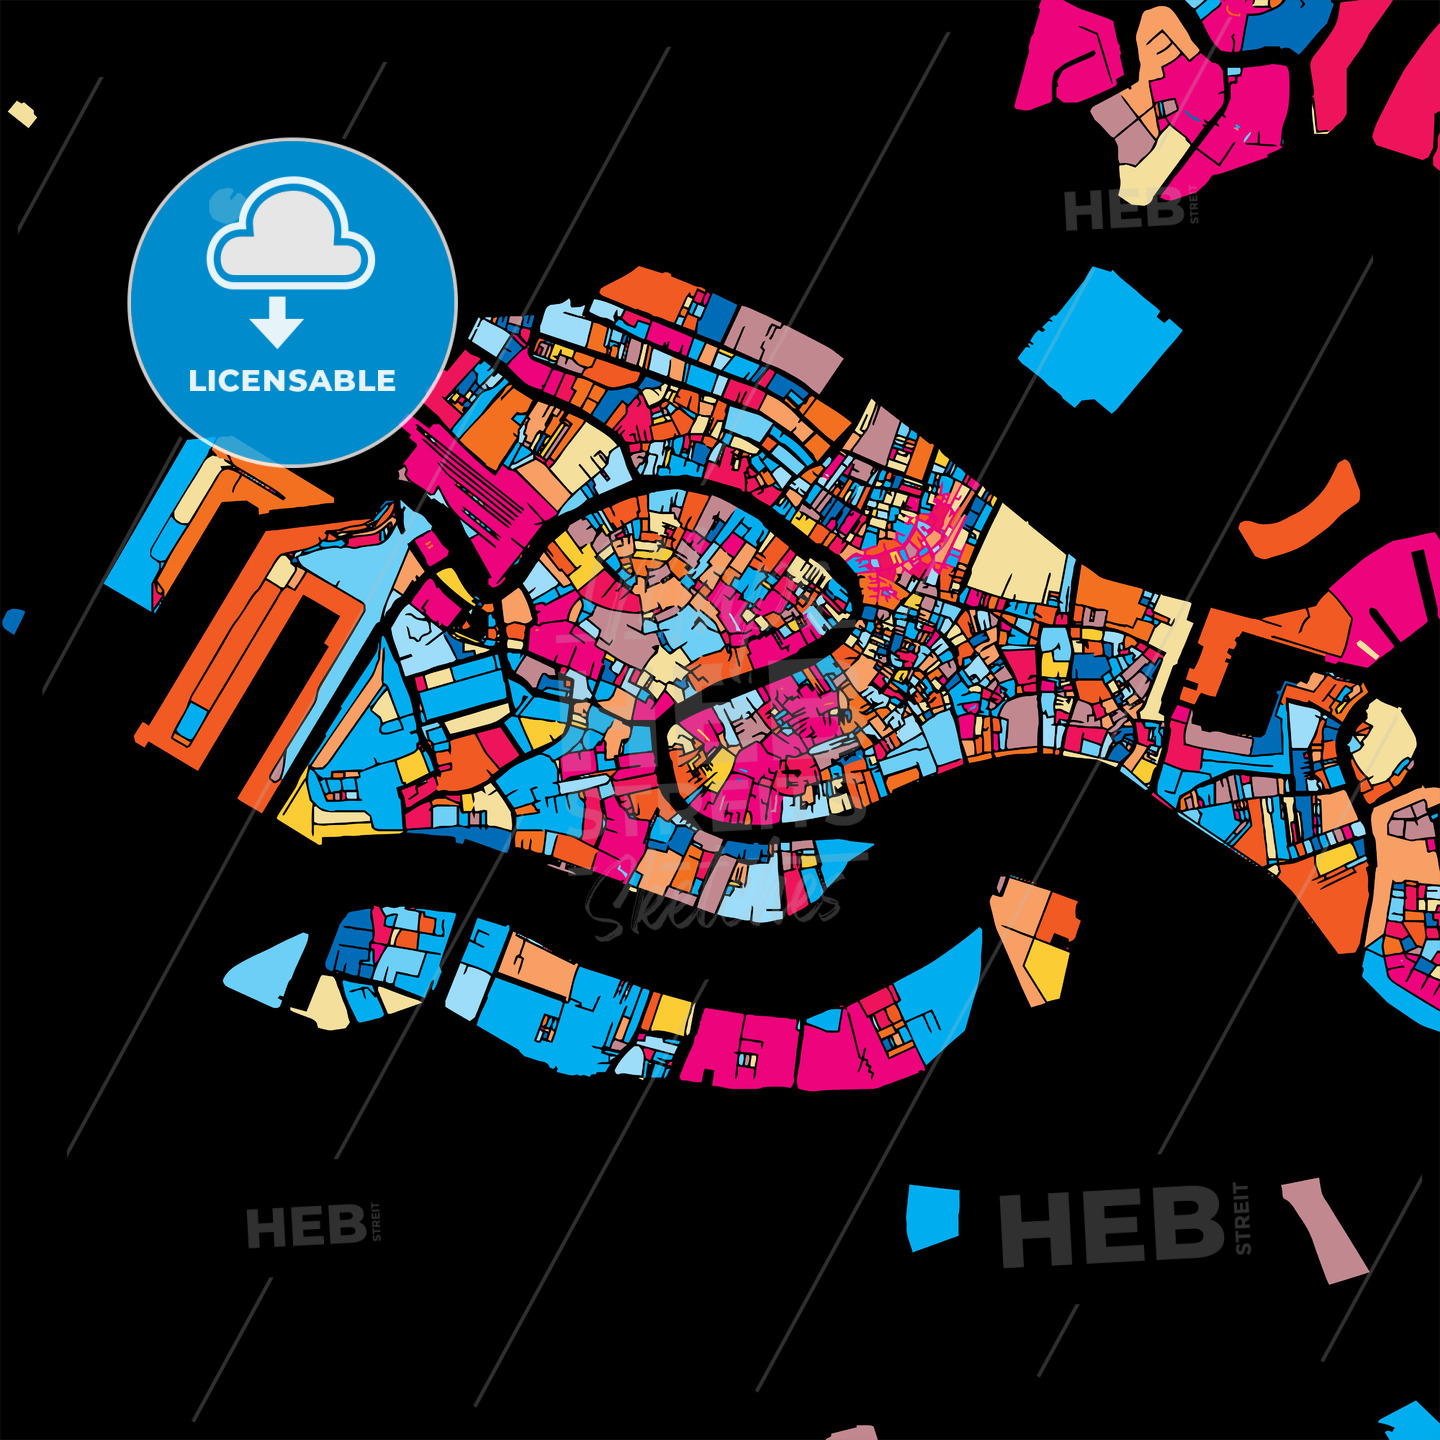 Venice Colorful Vector Map on Black - HEBSTREIT's Sketches